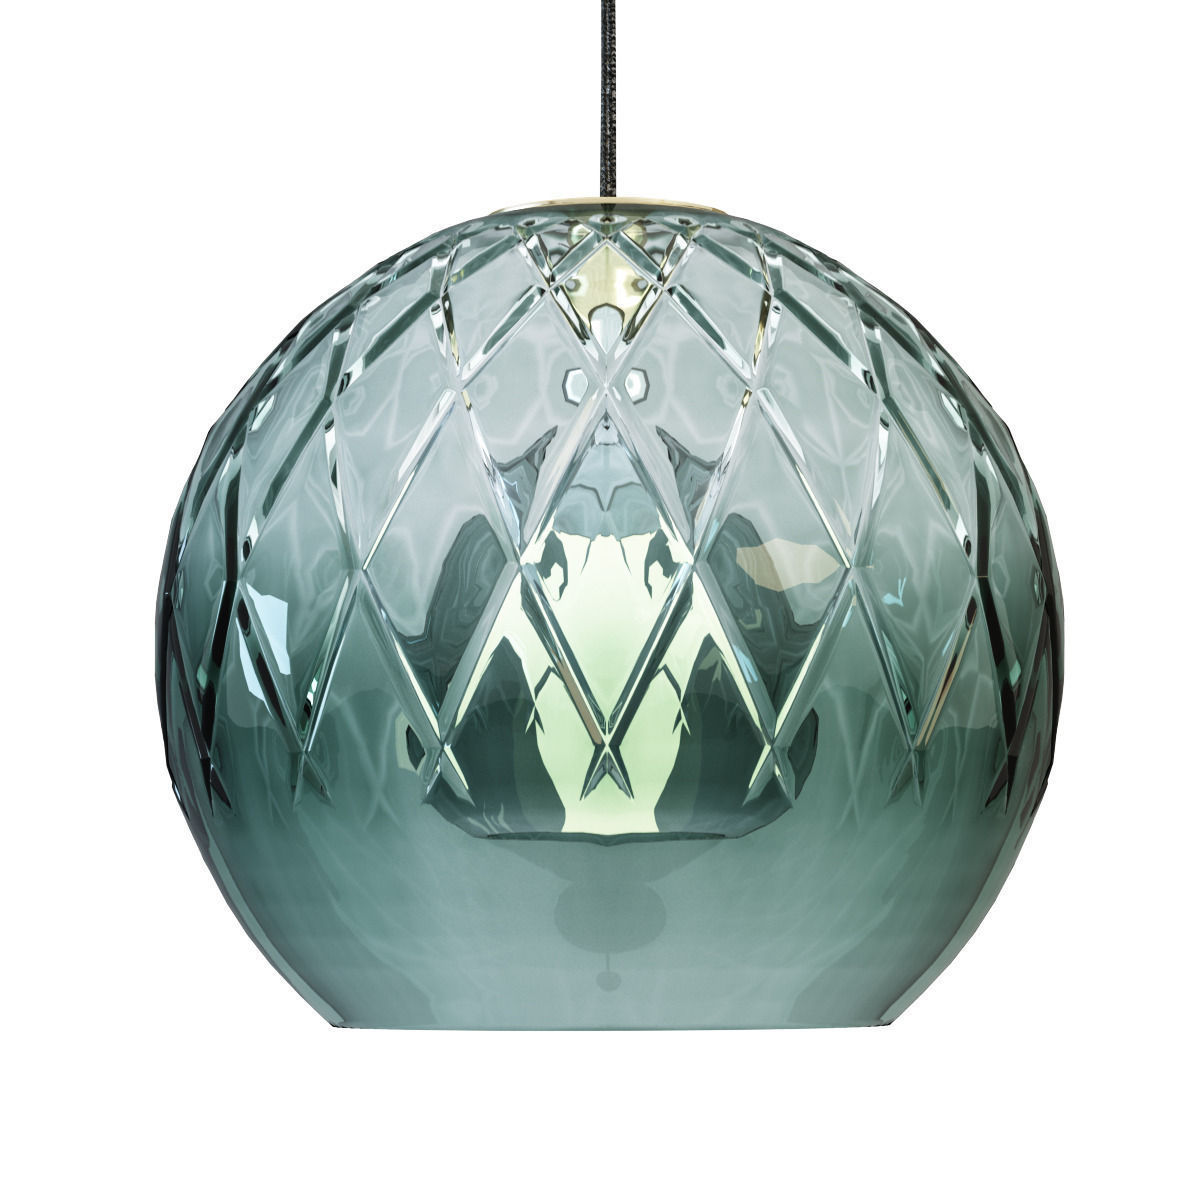 Hanging Light Round: Baccarat SFERA ROUND PENDANT LIGHT 3D Model MAX OBJ 3DS